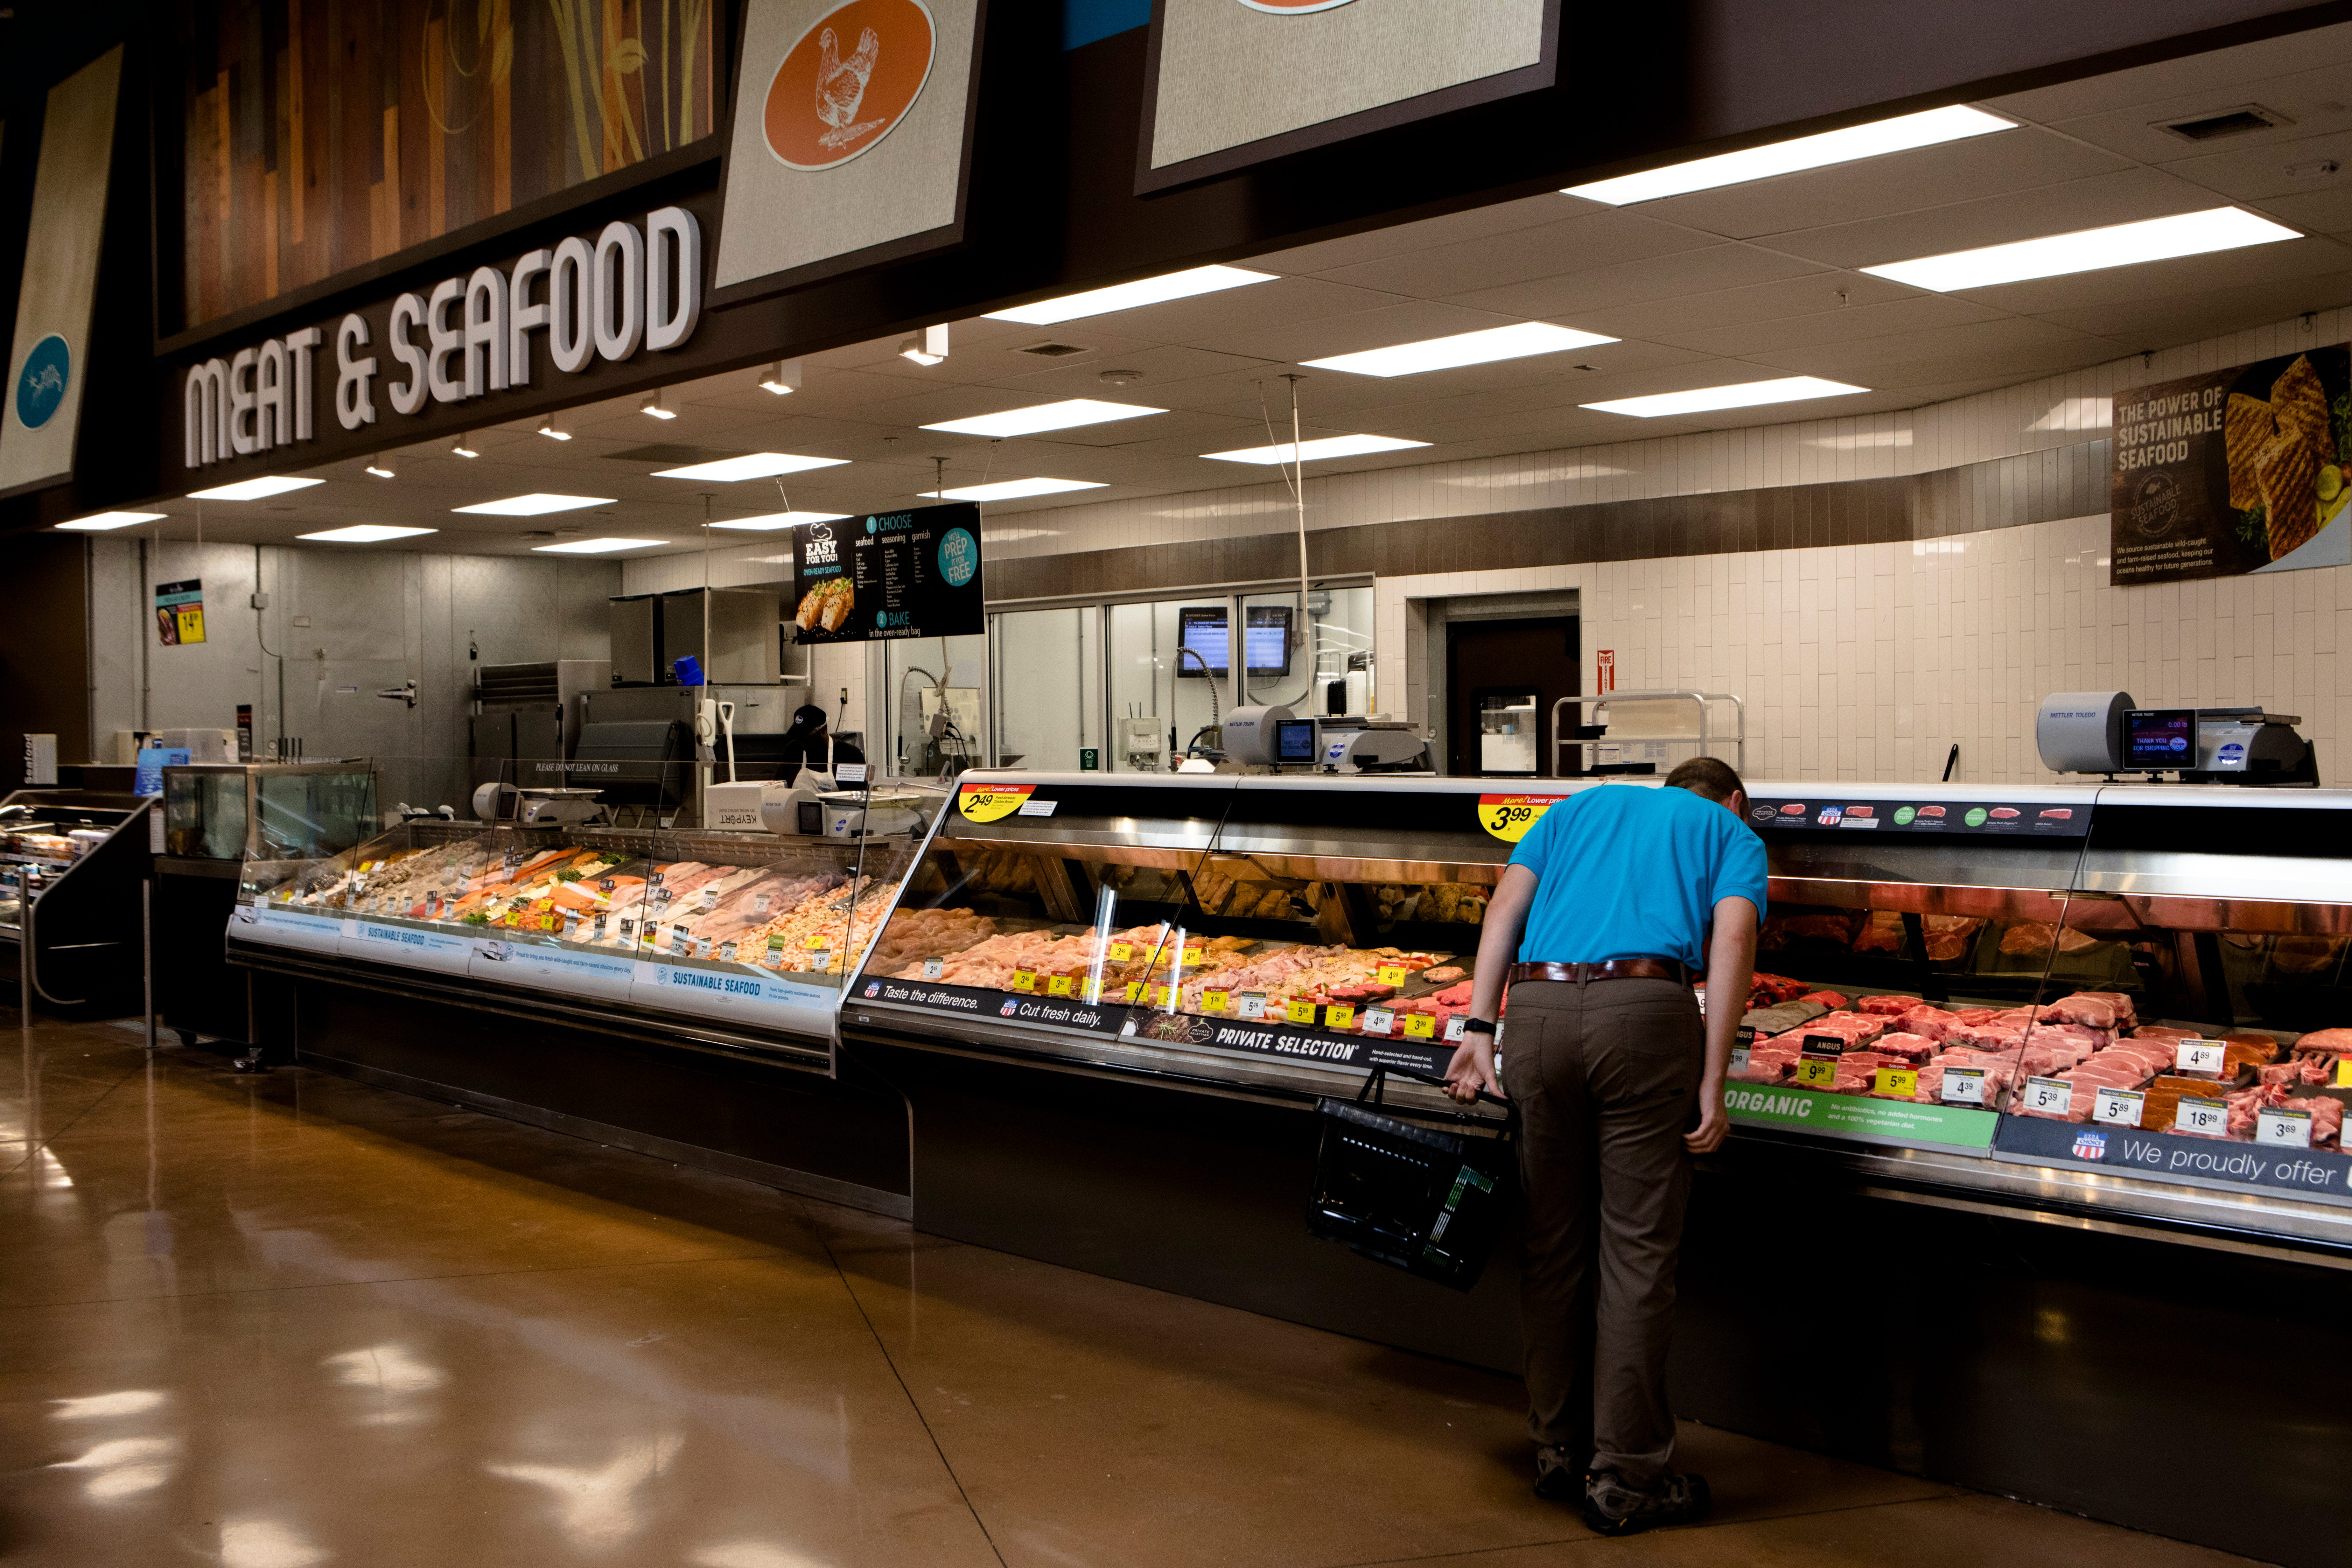 Coronavirus Kroger Shifts Meat Seafood And Deli Help To Focus On Shelves Salad Bars Close Thousands of products available for delivery from kroger. cincinnati enquirer